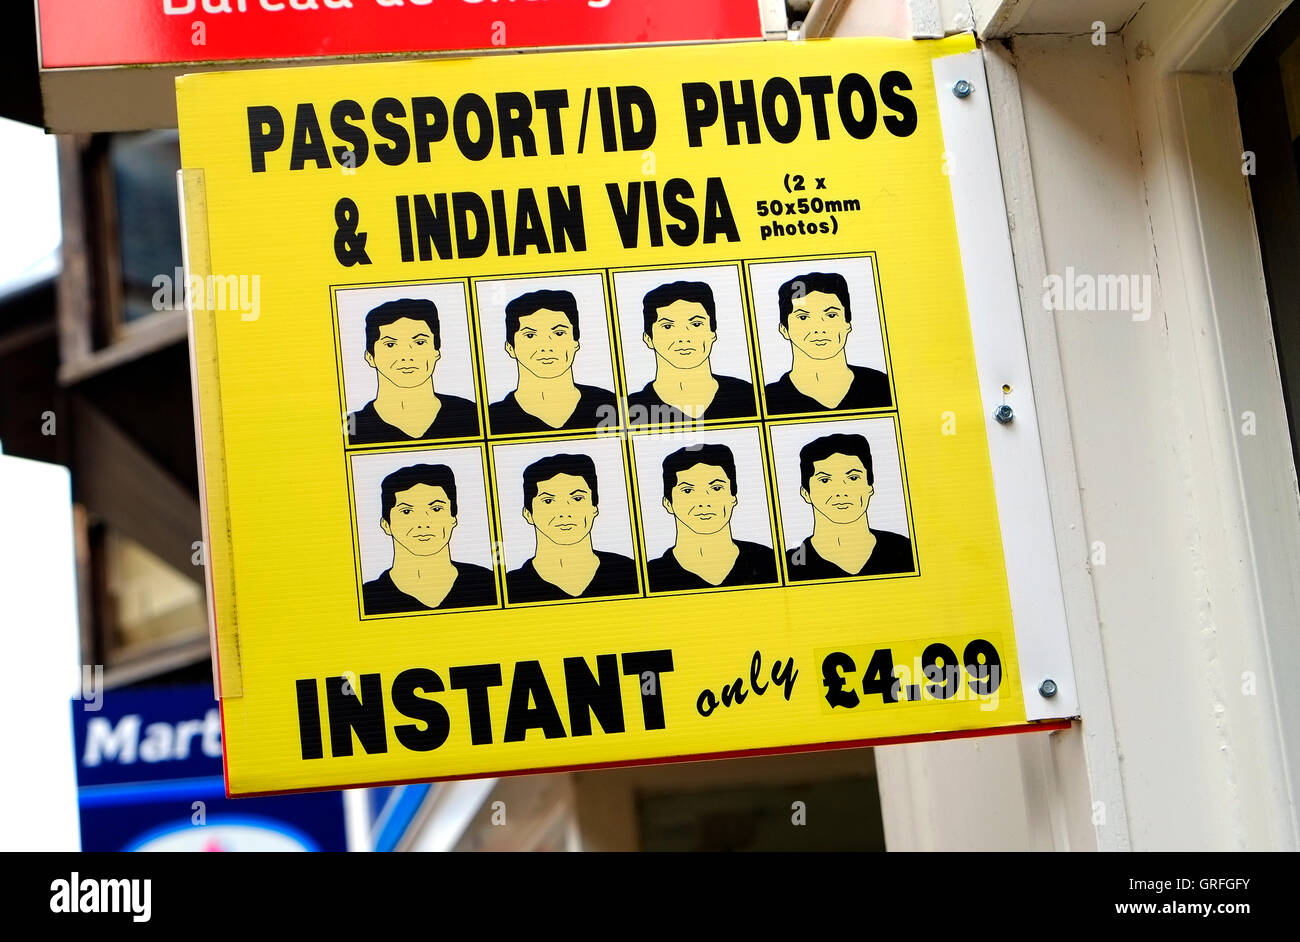 passport id photos & indian visa sign outside shop in norfolk, england - Stock Image